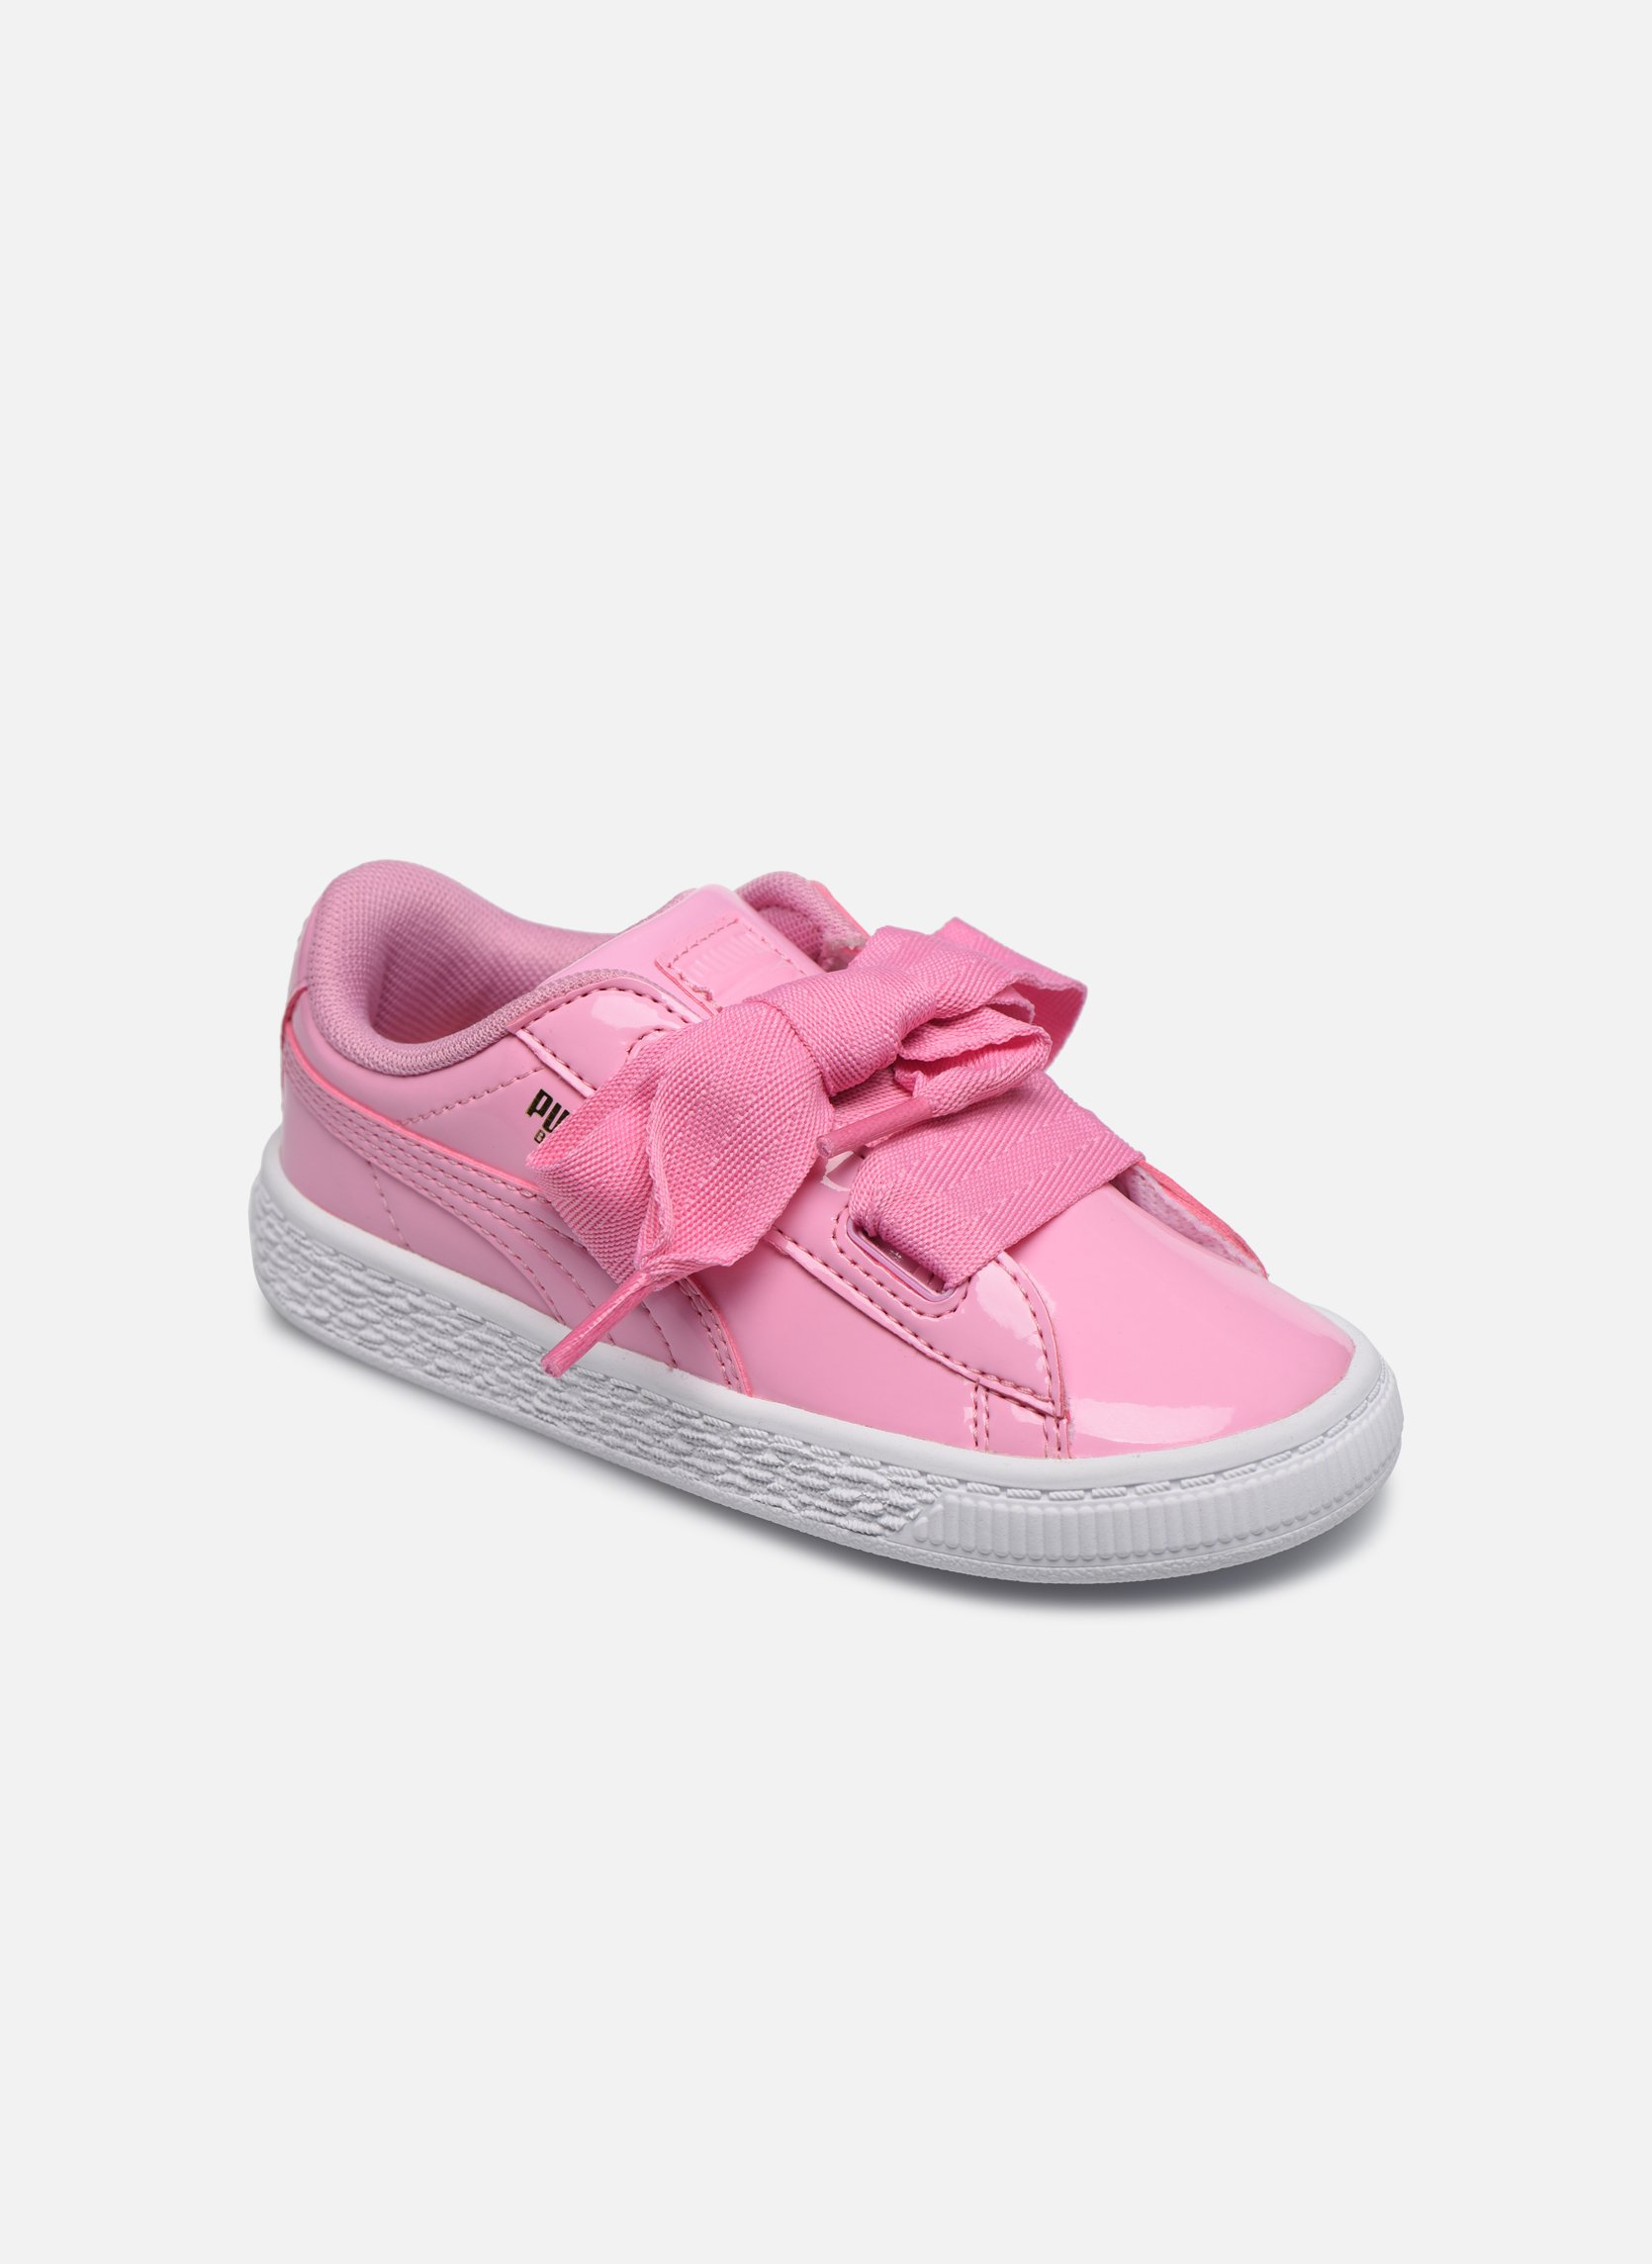 puma rose basket